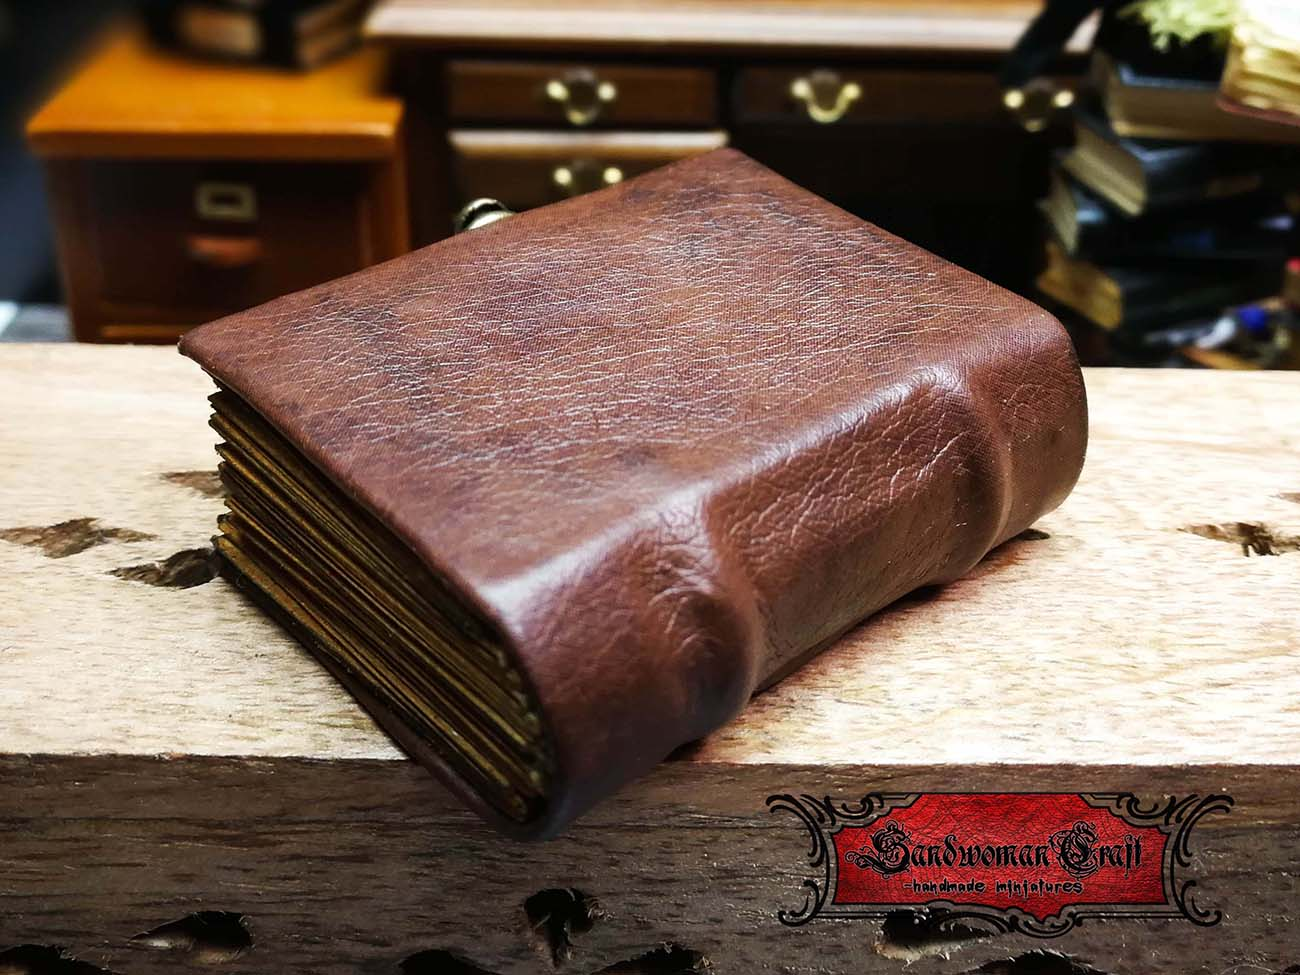 Miniature leather book in 1:6 scale